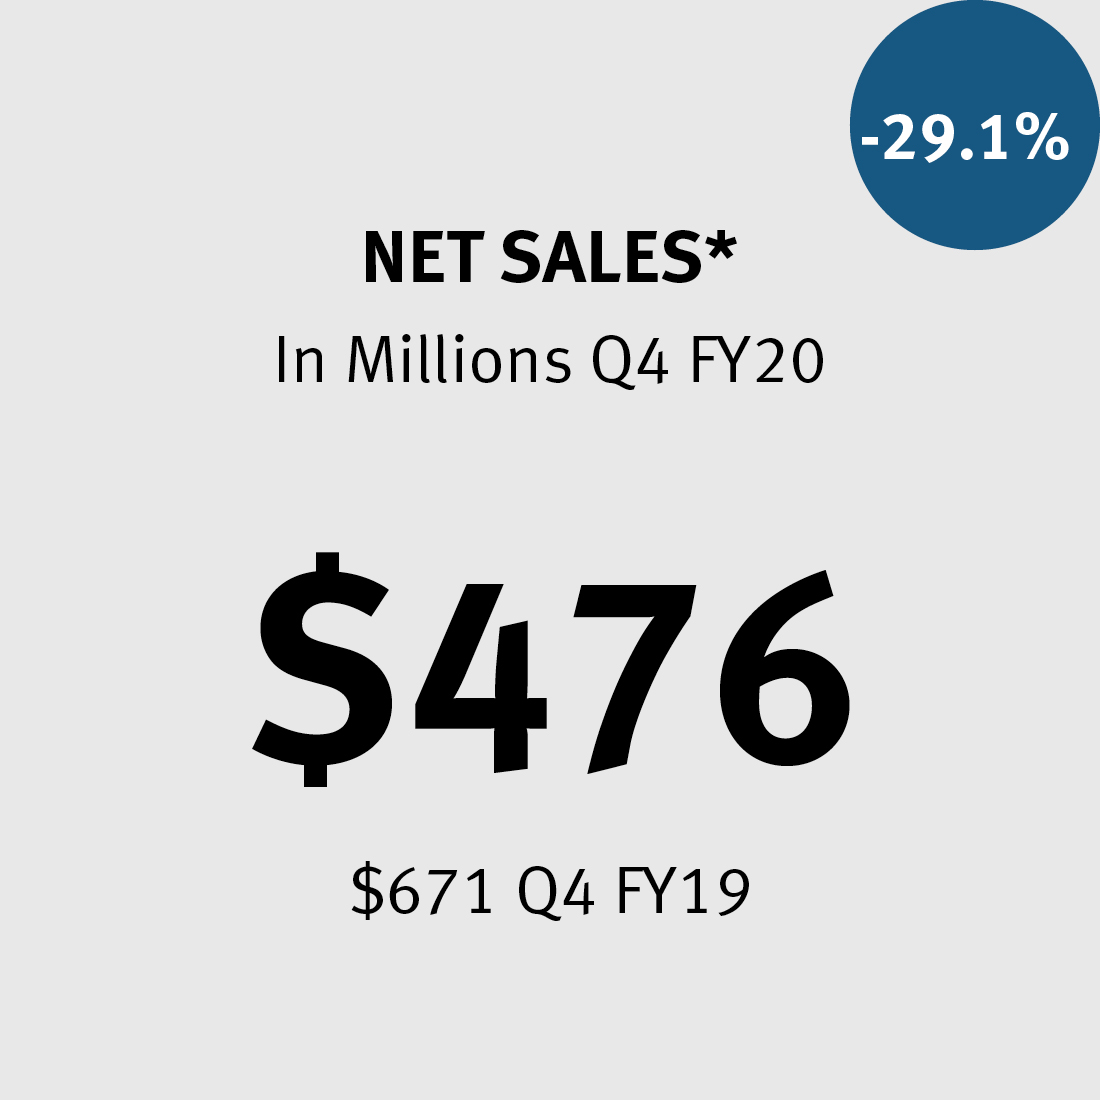 Net Sales * $476M ($671 in 2019) -29.1%